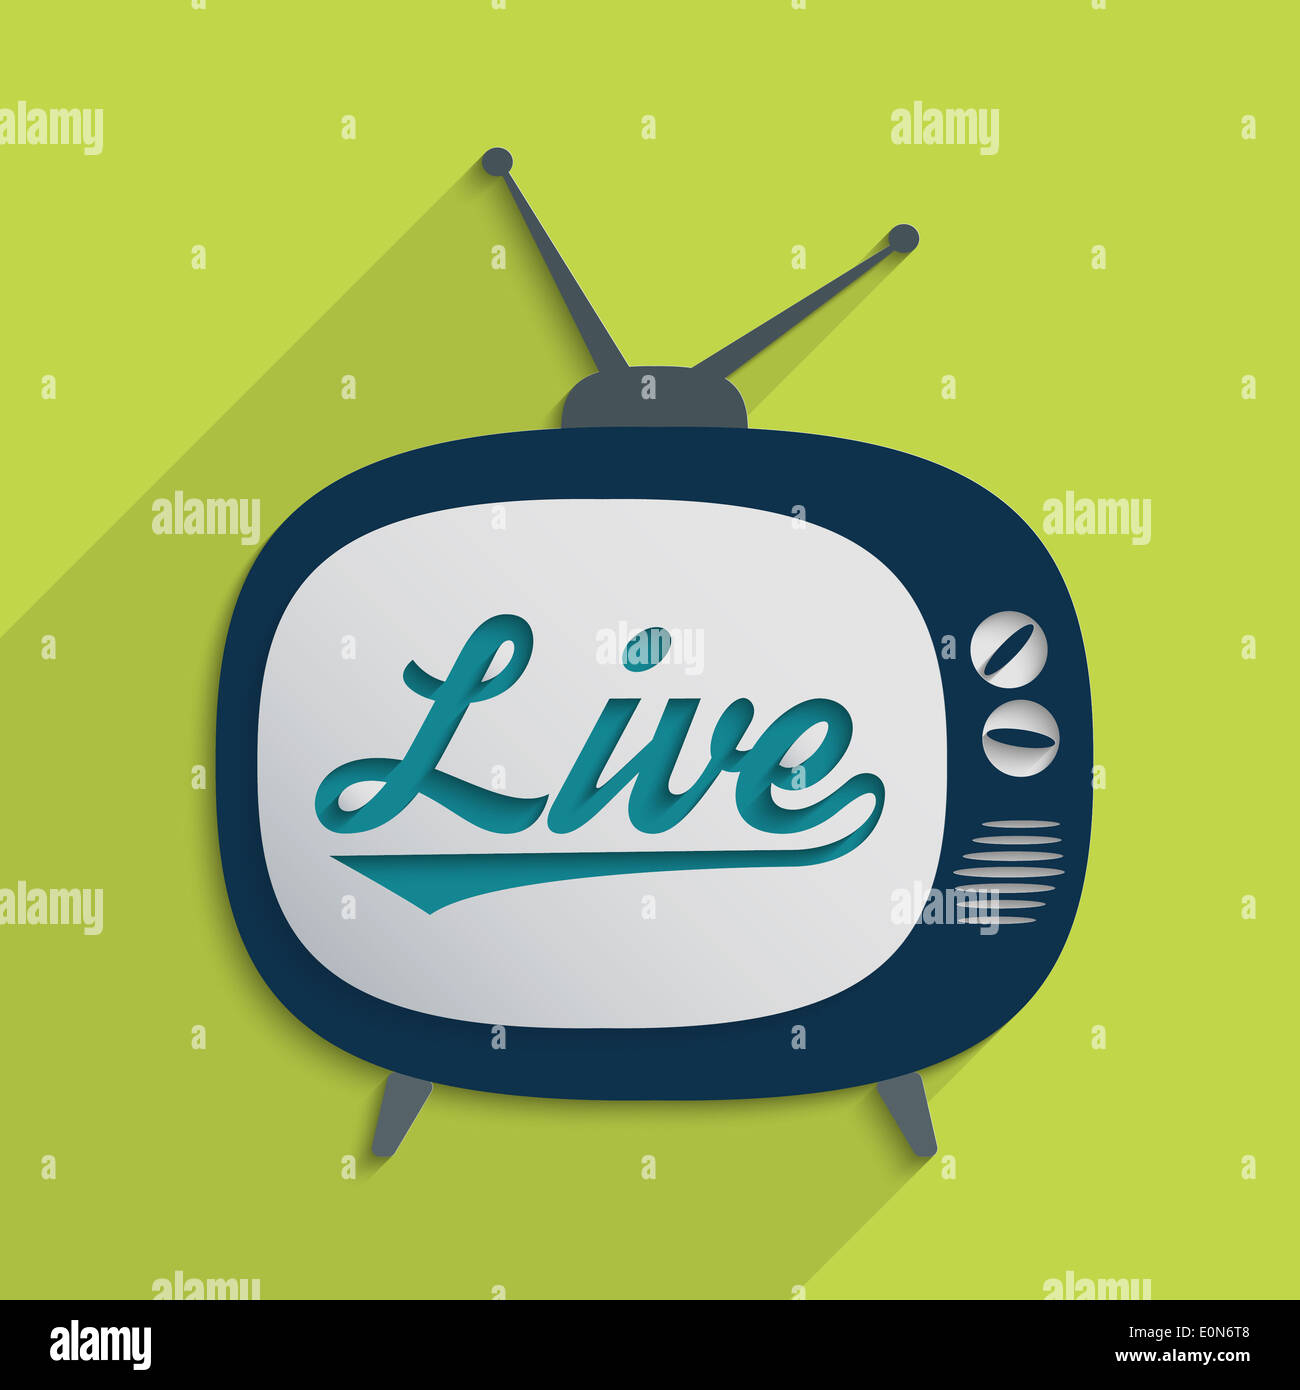 Concept for mass media, global village, information technology and livestream. Flat design illustration. - Stock Image